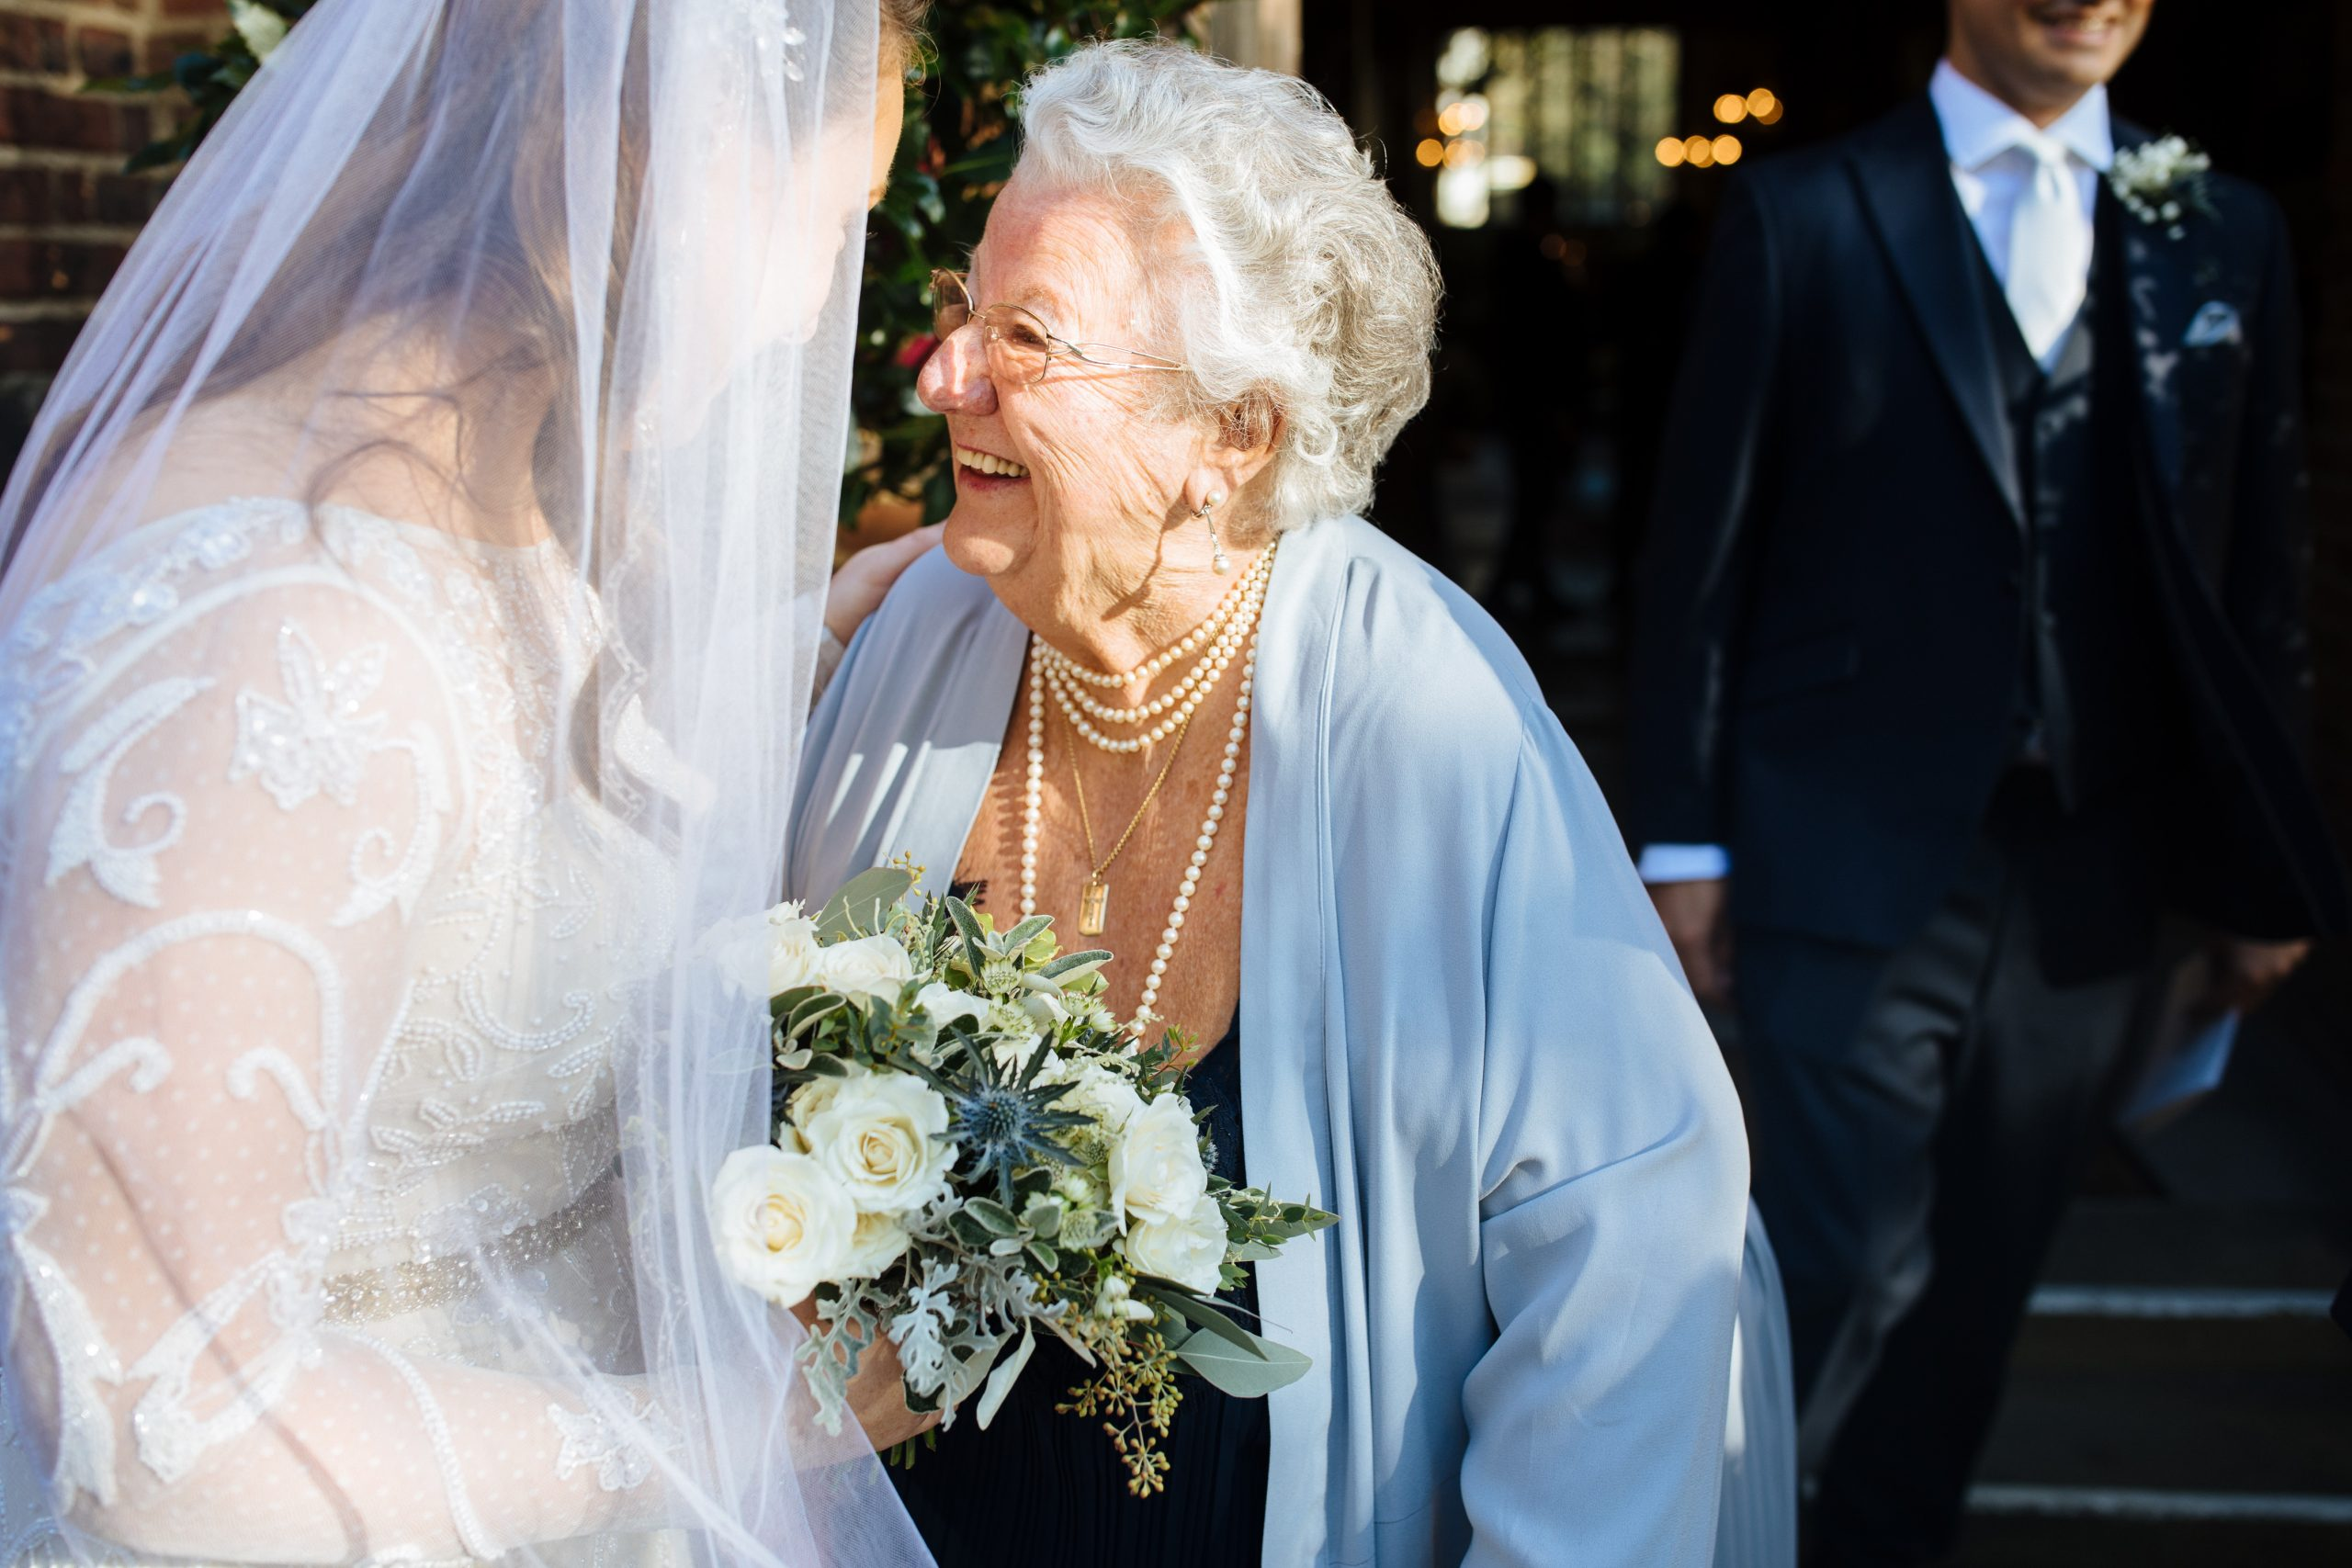 grooms gran laughing with bride after wedding ceremony